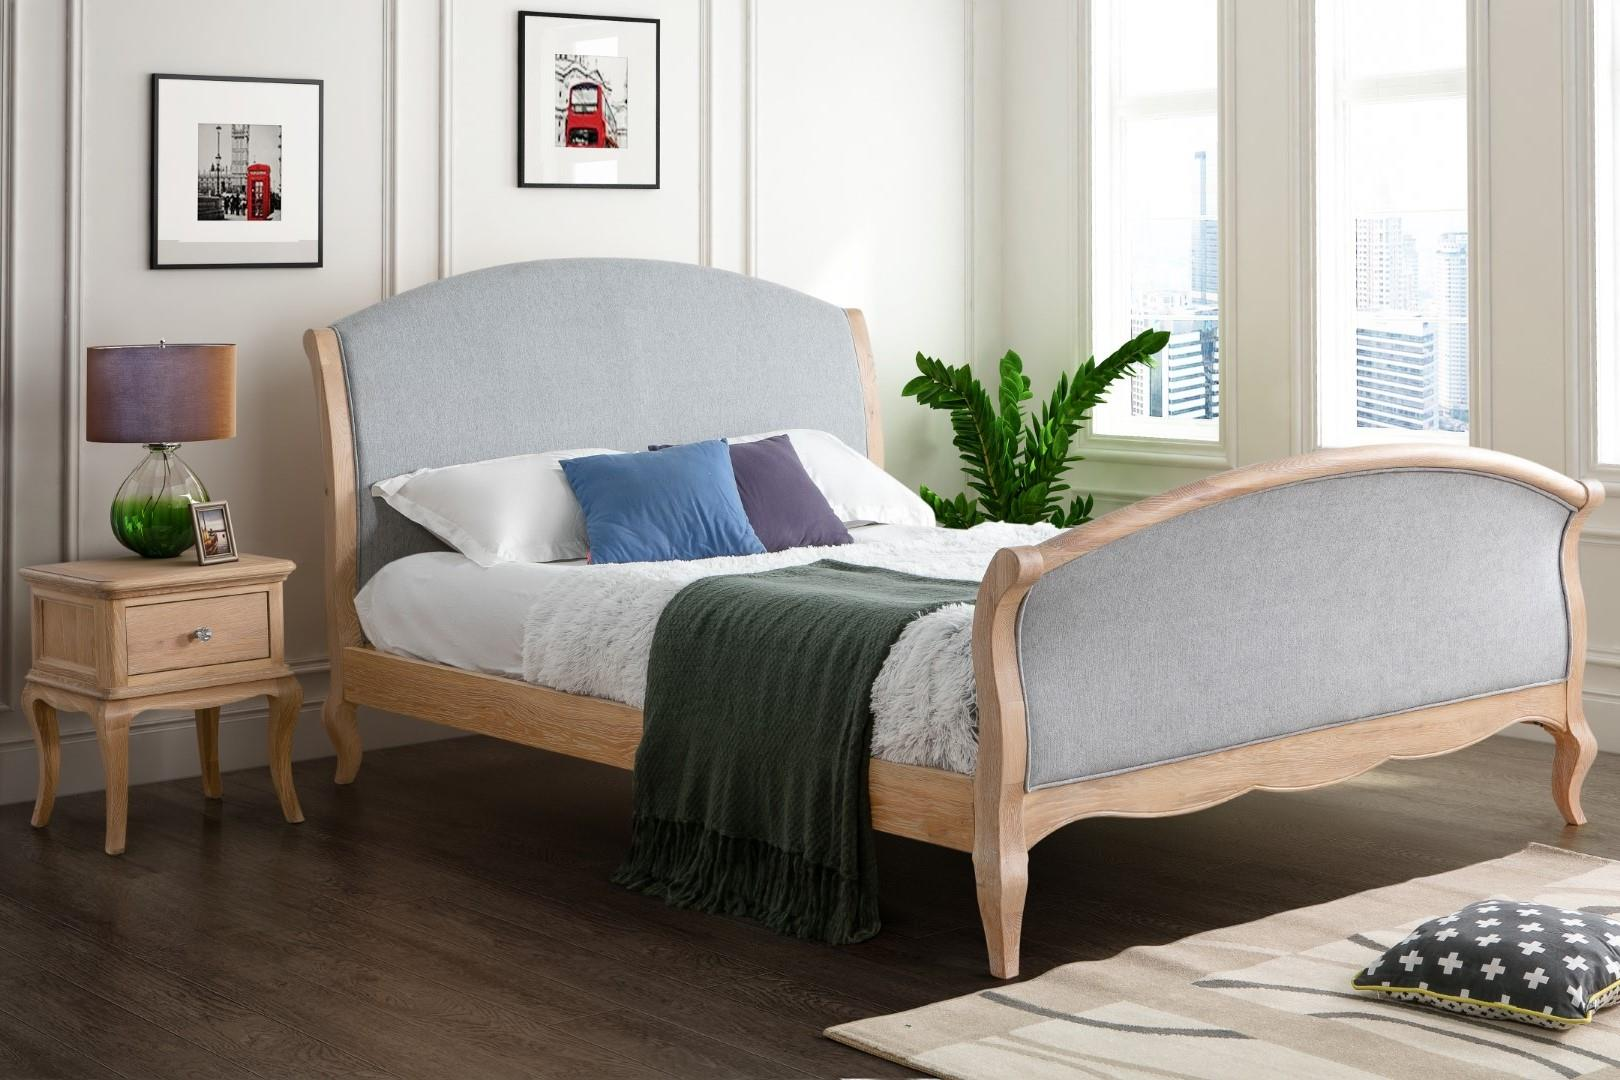 Birlea Savoy Solid Oak Wood Bed Frame Grey Fabric 4FT6 Double 135cm Bedstead